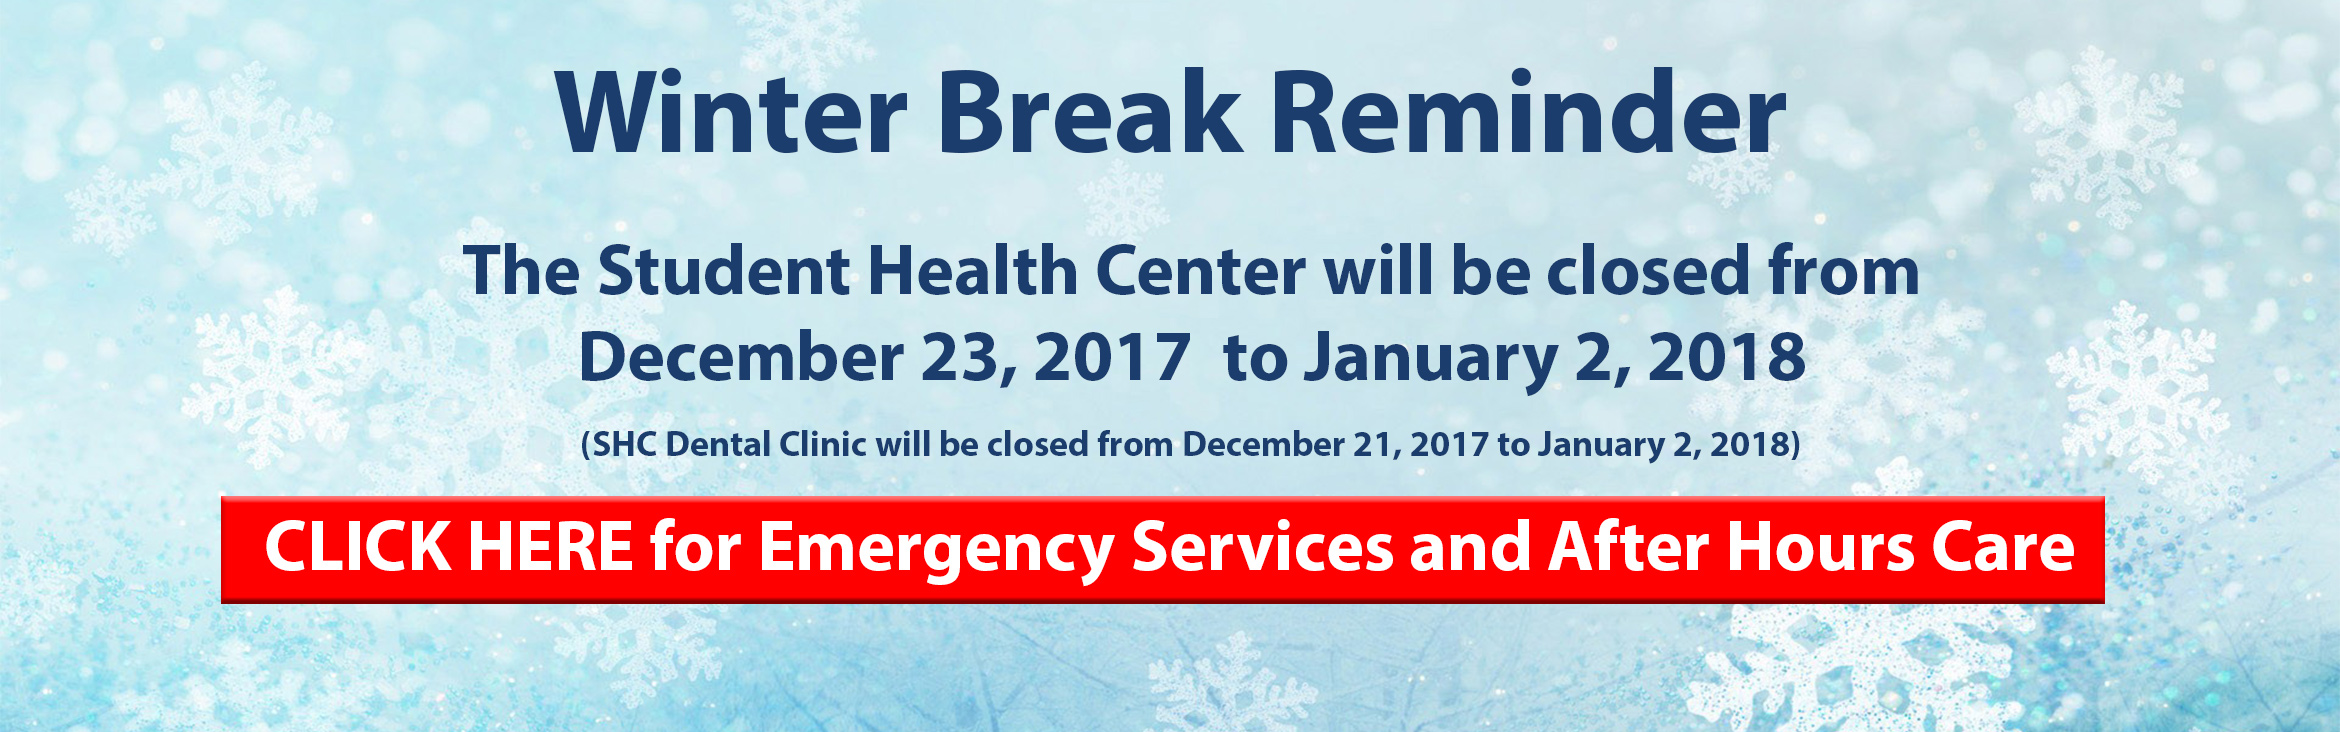 Winter Break Reminder - The Student Health Center will be closed from December 23, 2017 to January 2, 2018. The SHC Dental Clinic will be closed from December 21, 2017 to January 2, 2018